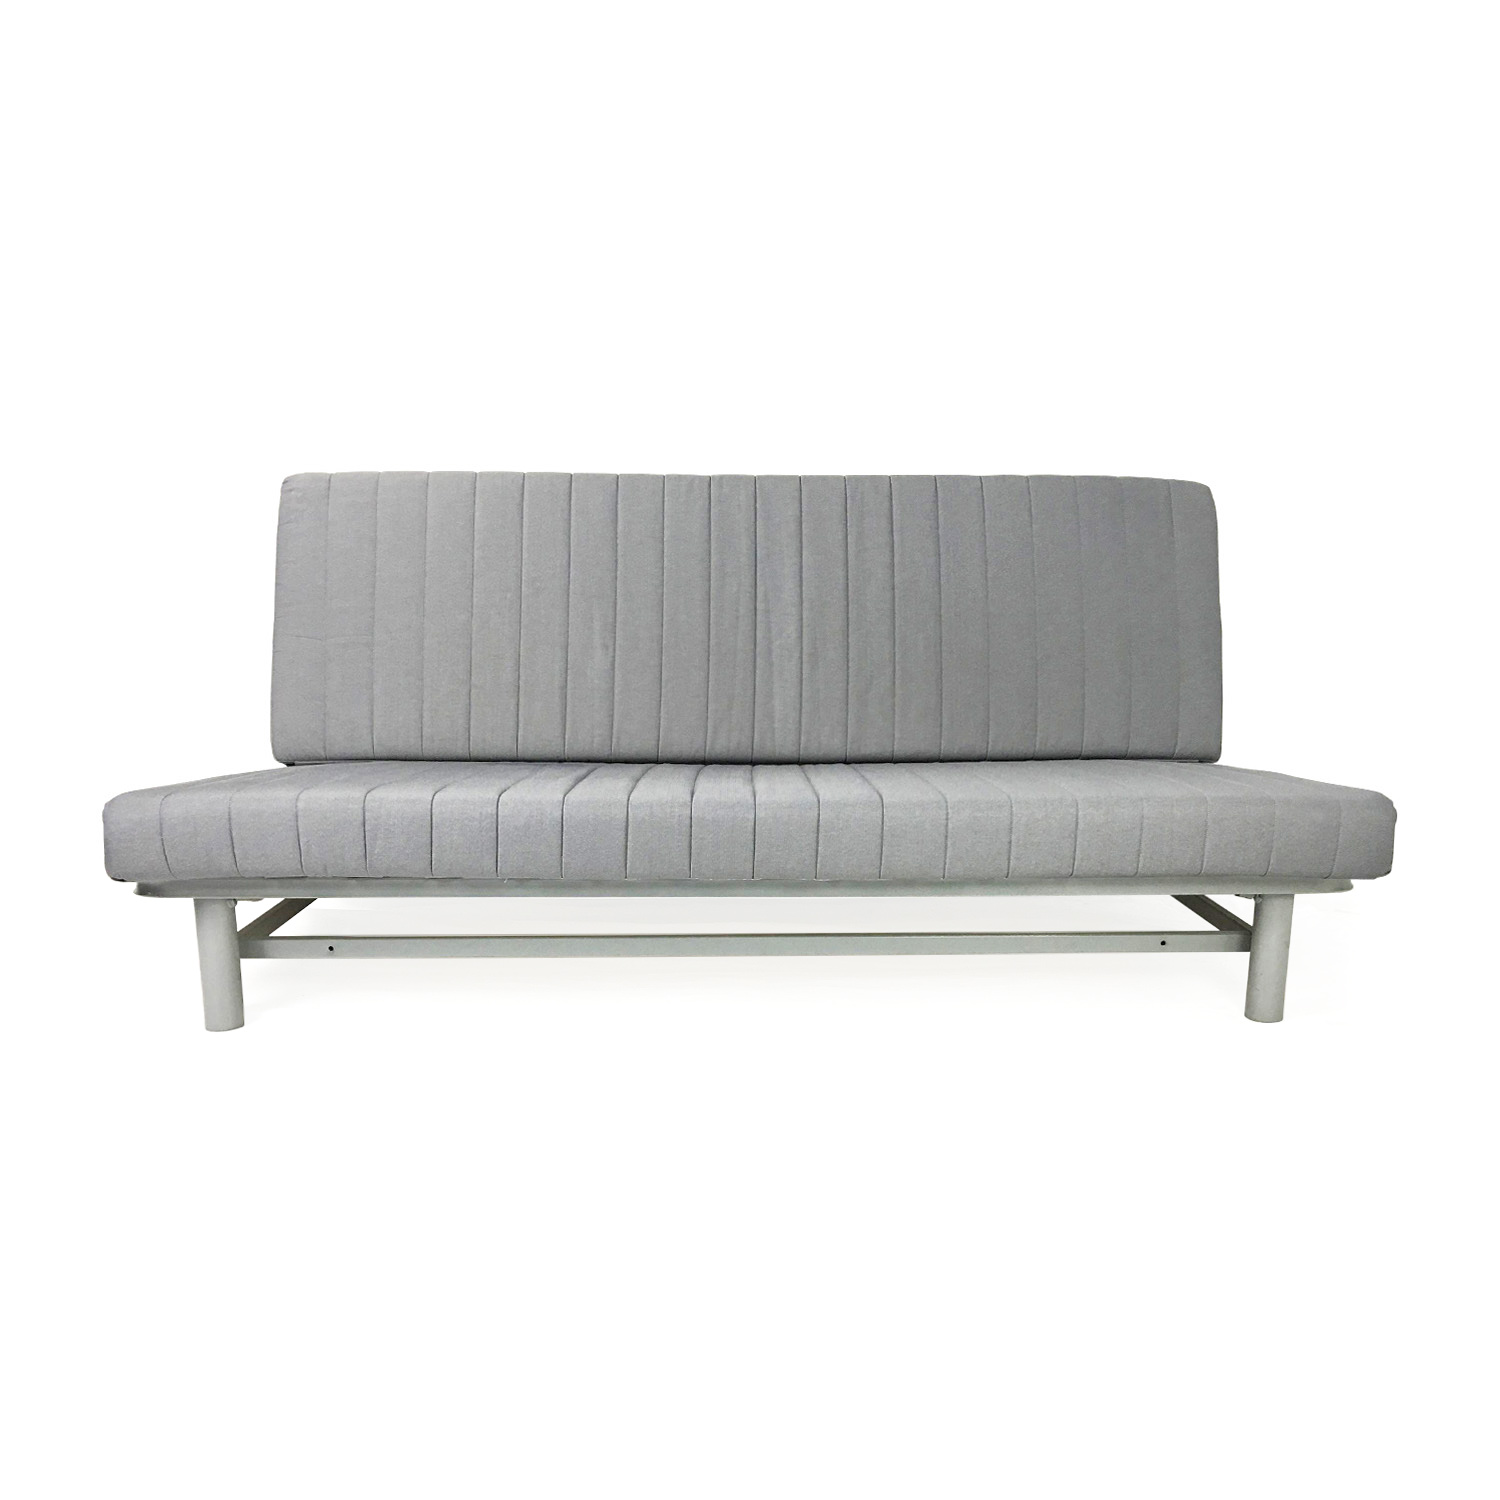 Ikea bed sofas backabro sofa bed with chaise longue ramna for Furniture sofa bed